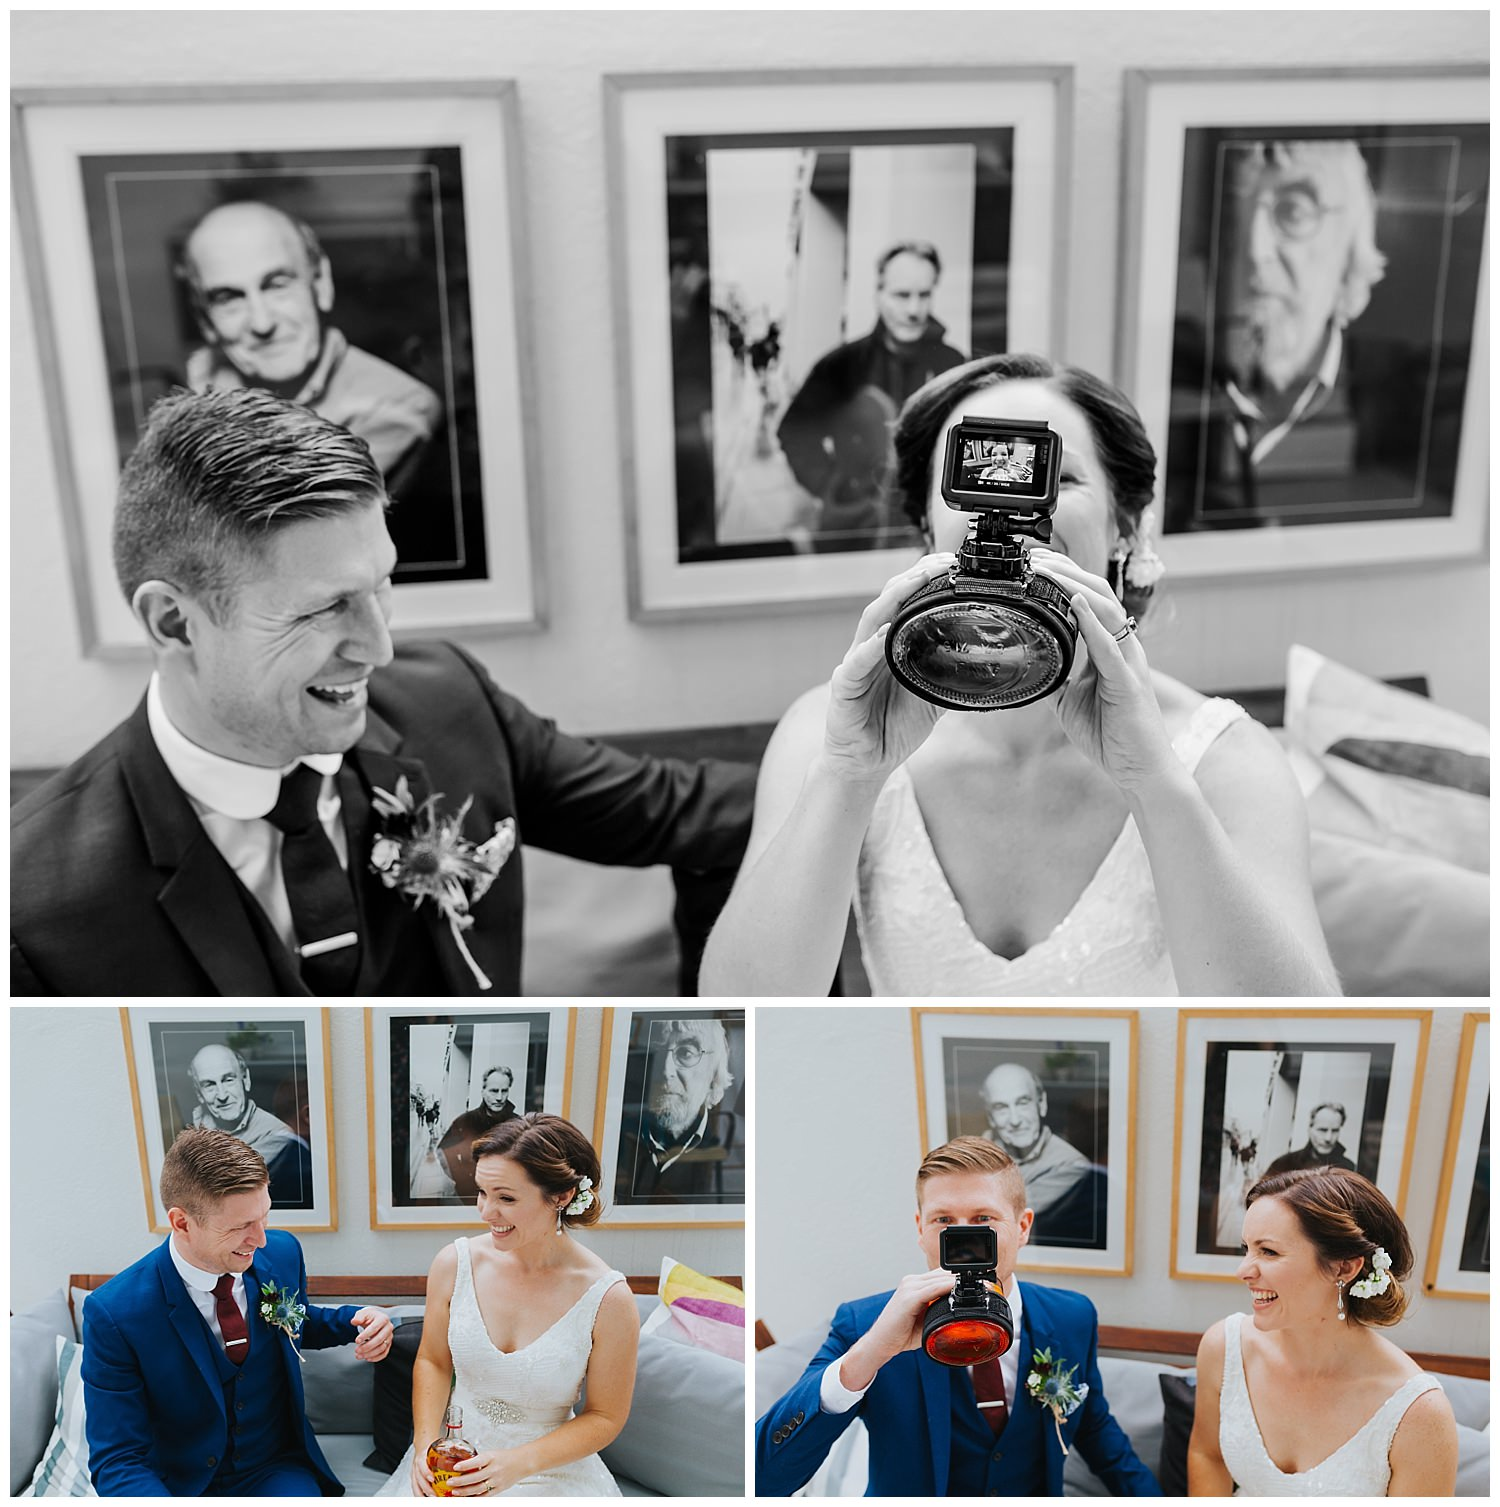 e+t_ballilogue_kilkenny_wedding_photographer_liviafigueiredo_139.jpg